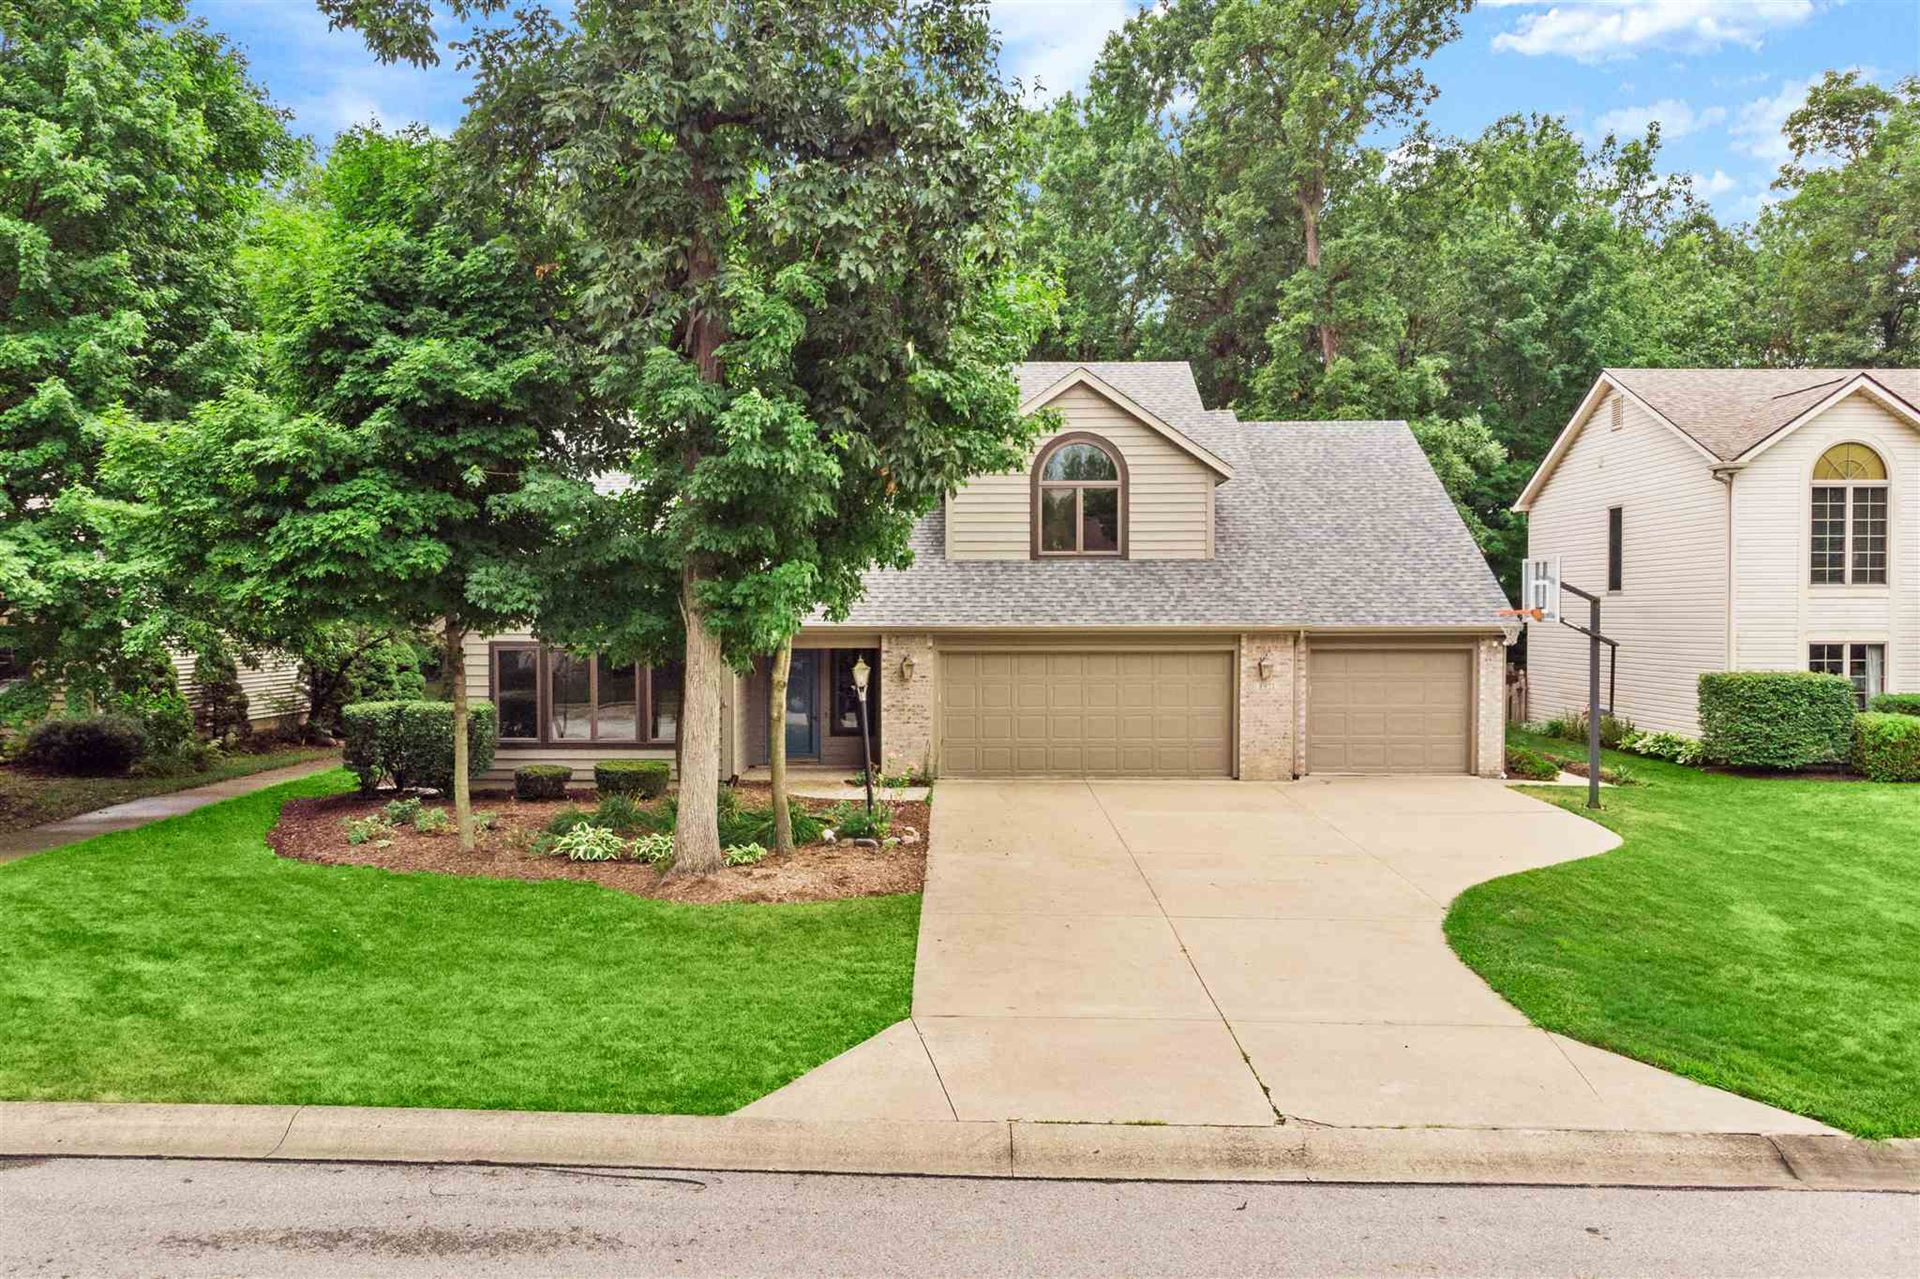 8921 Spring Forest Drive, Fort Wayne, IN 46804 - #: 202028657